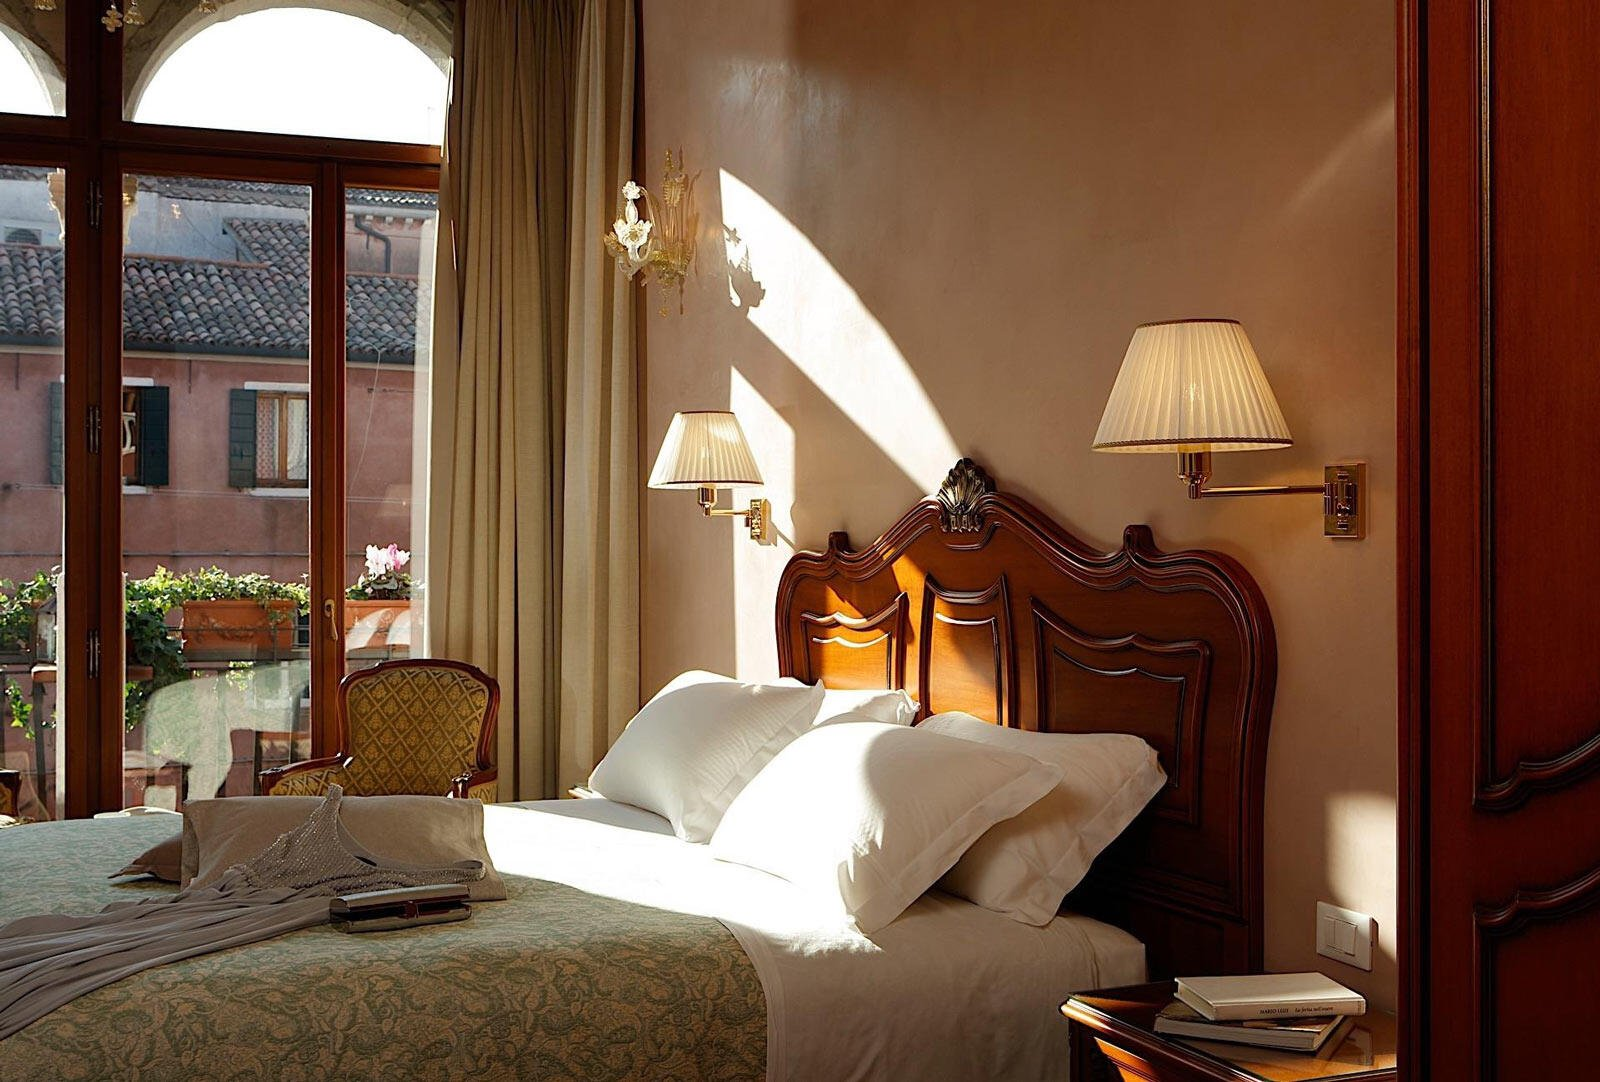 Room at Hotel Bisanzio in Venice, Italy